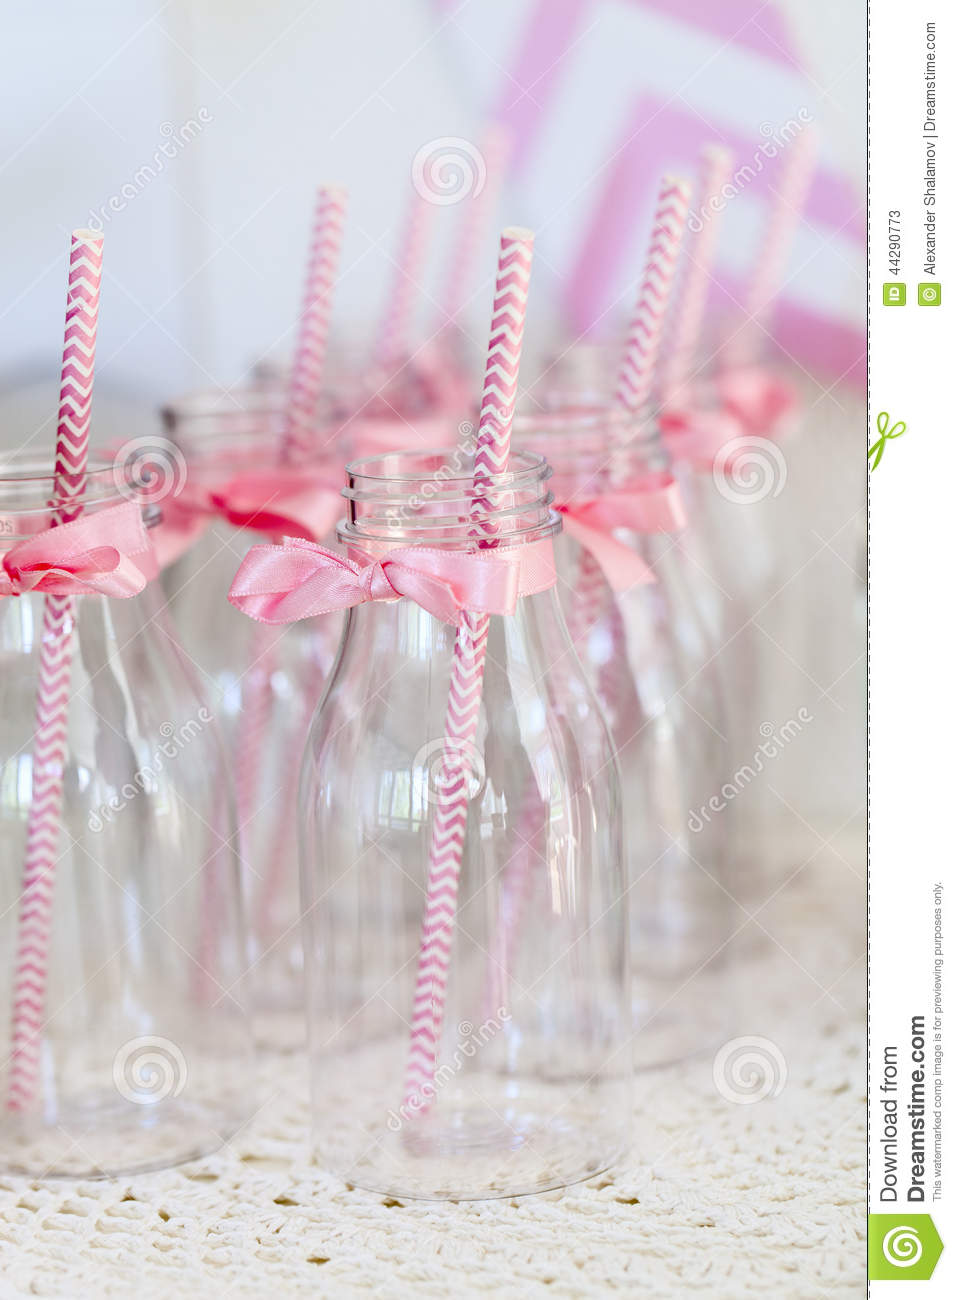 Milk Bottles For Decoration Party Decoration Ideas Stock Image Image Of Vintage 44290773